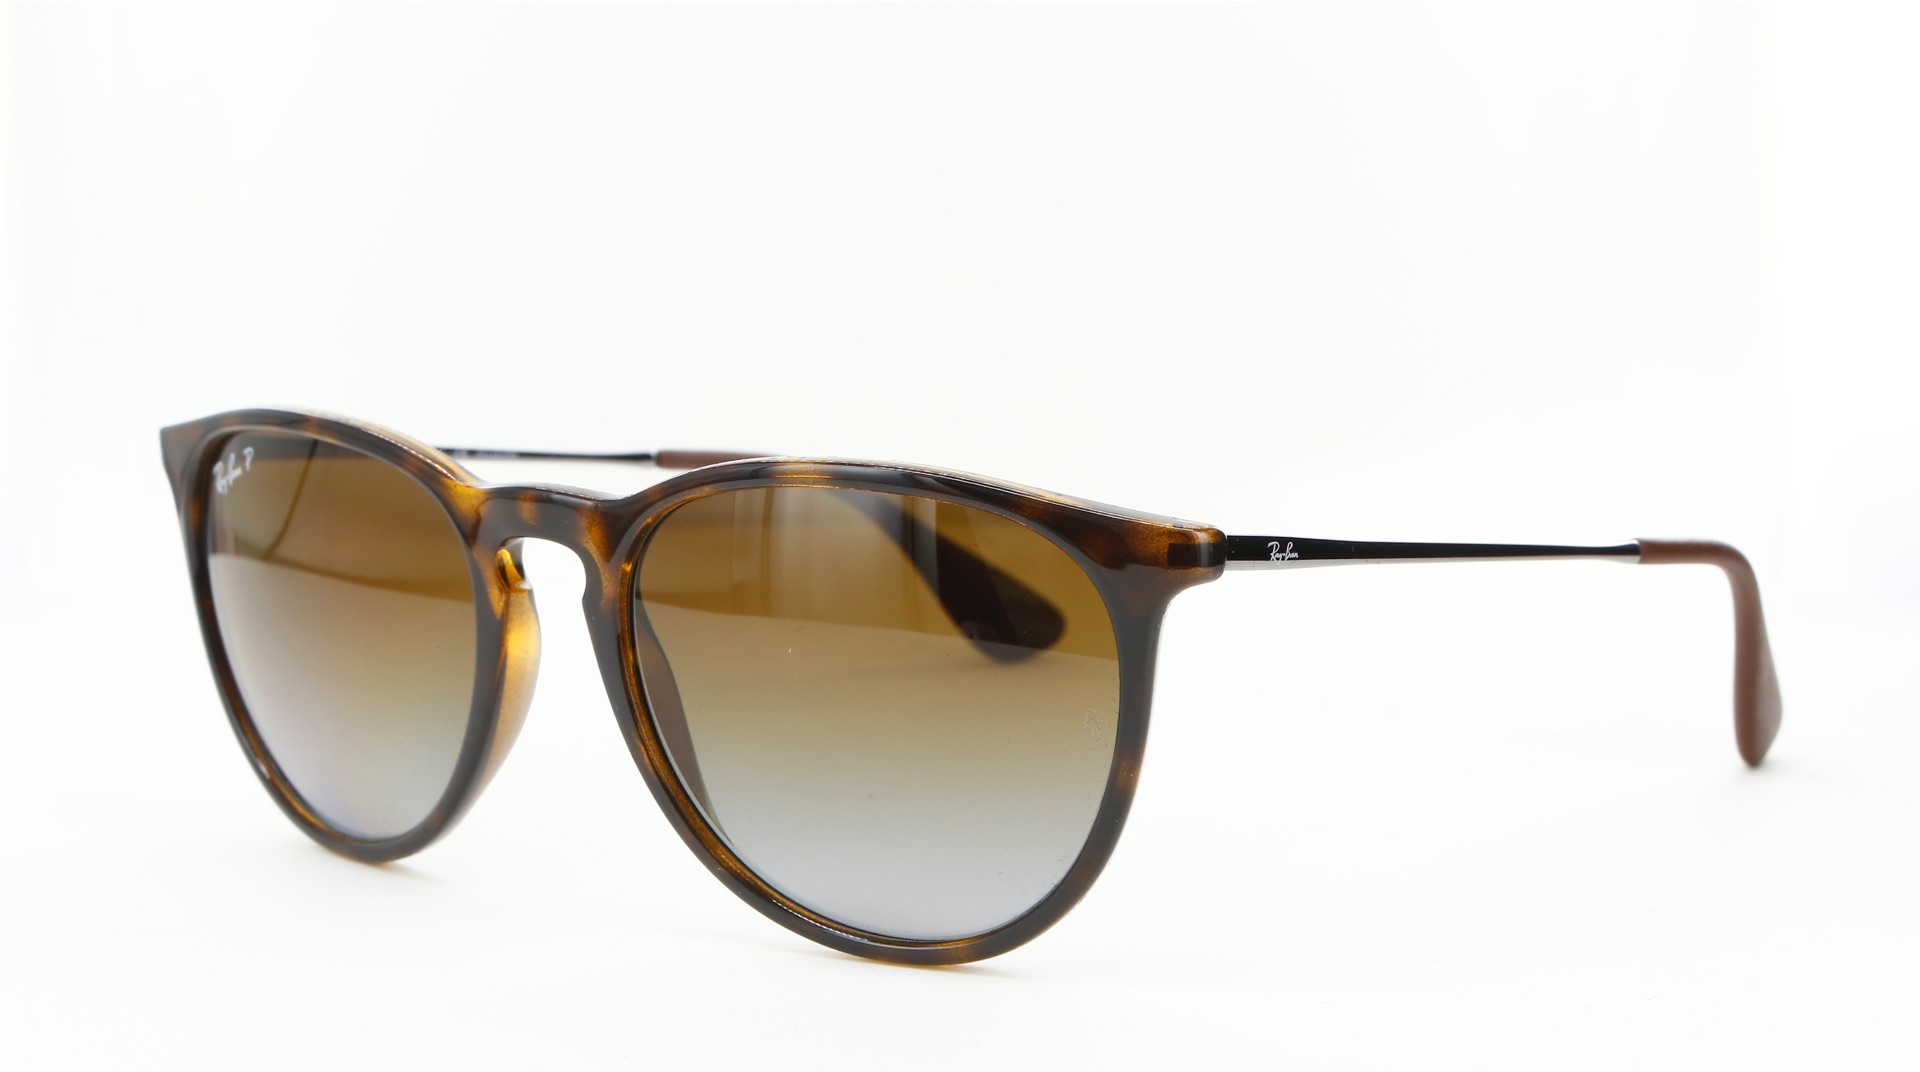 Ray-Ban - ref: 74764